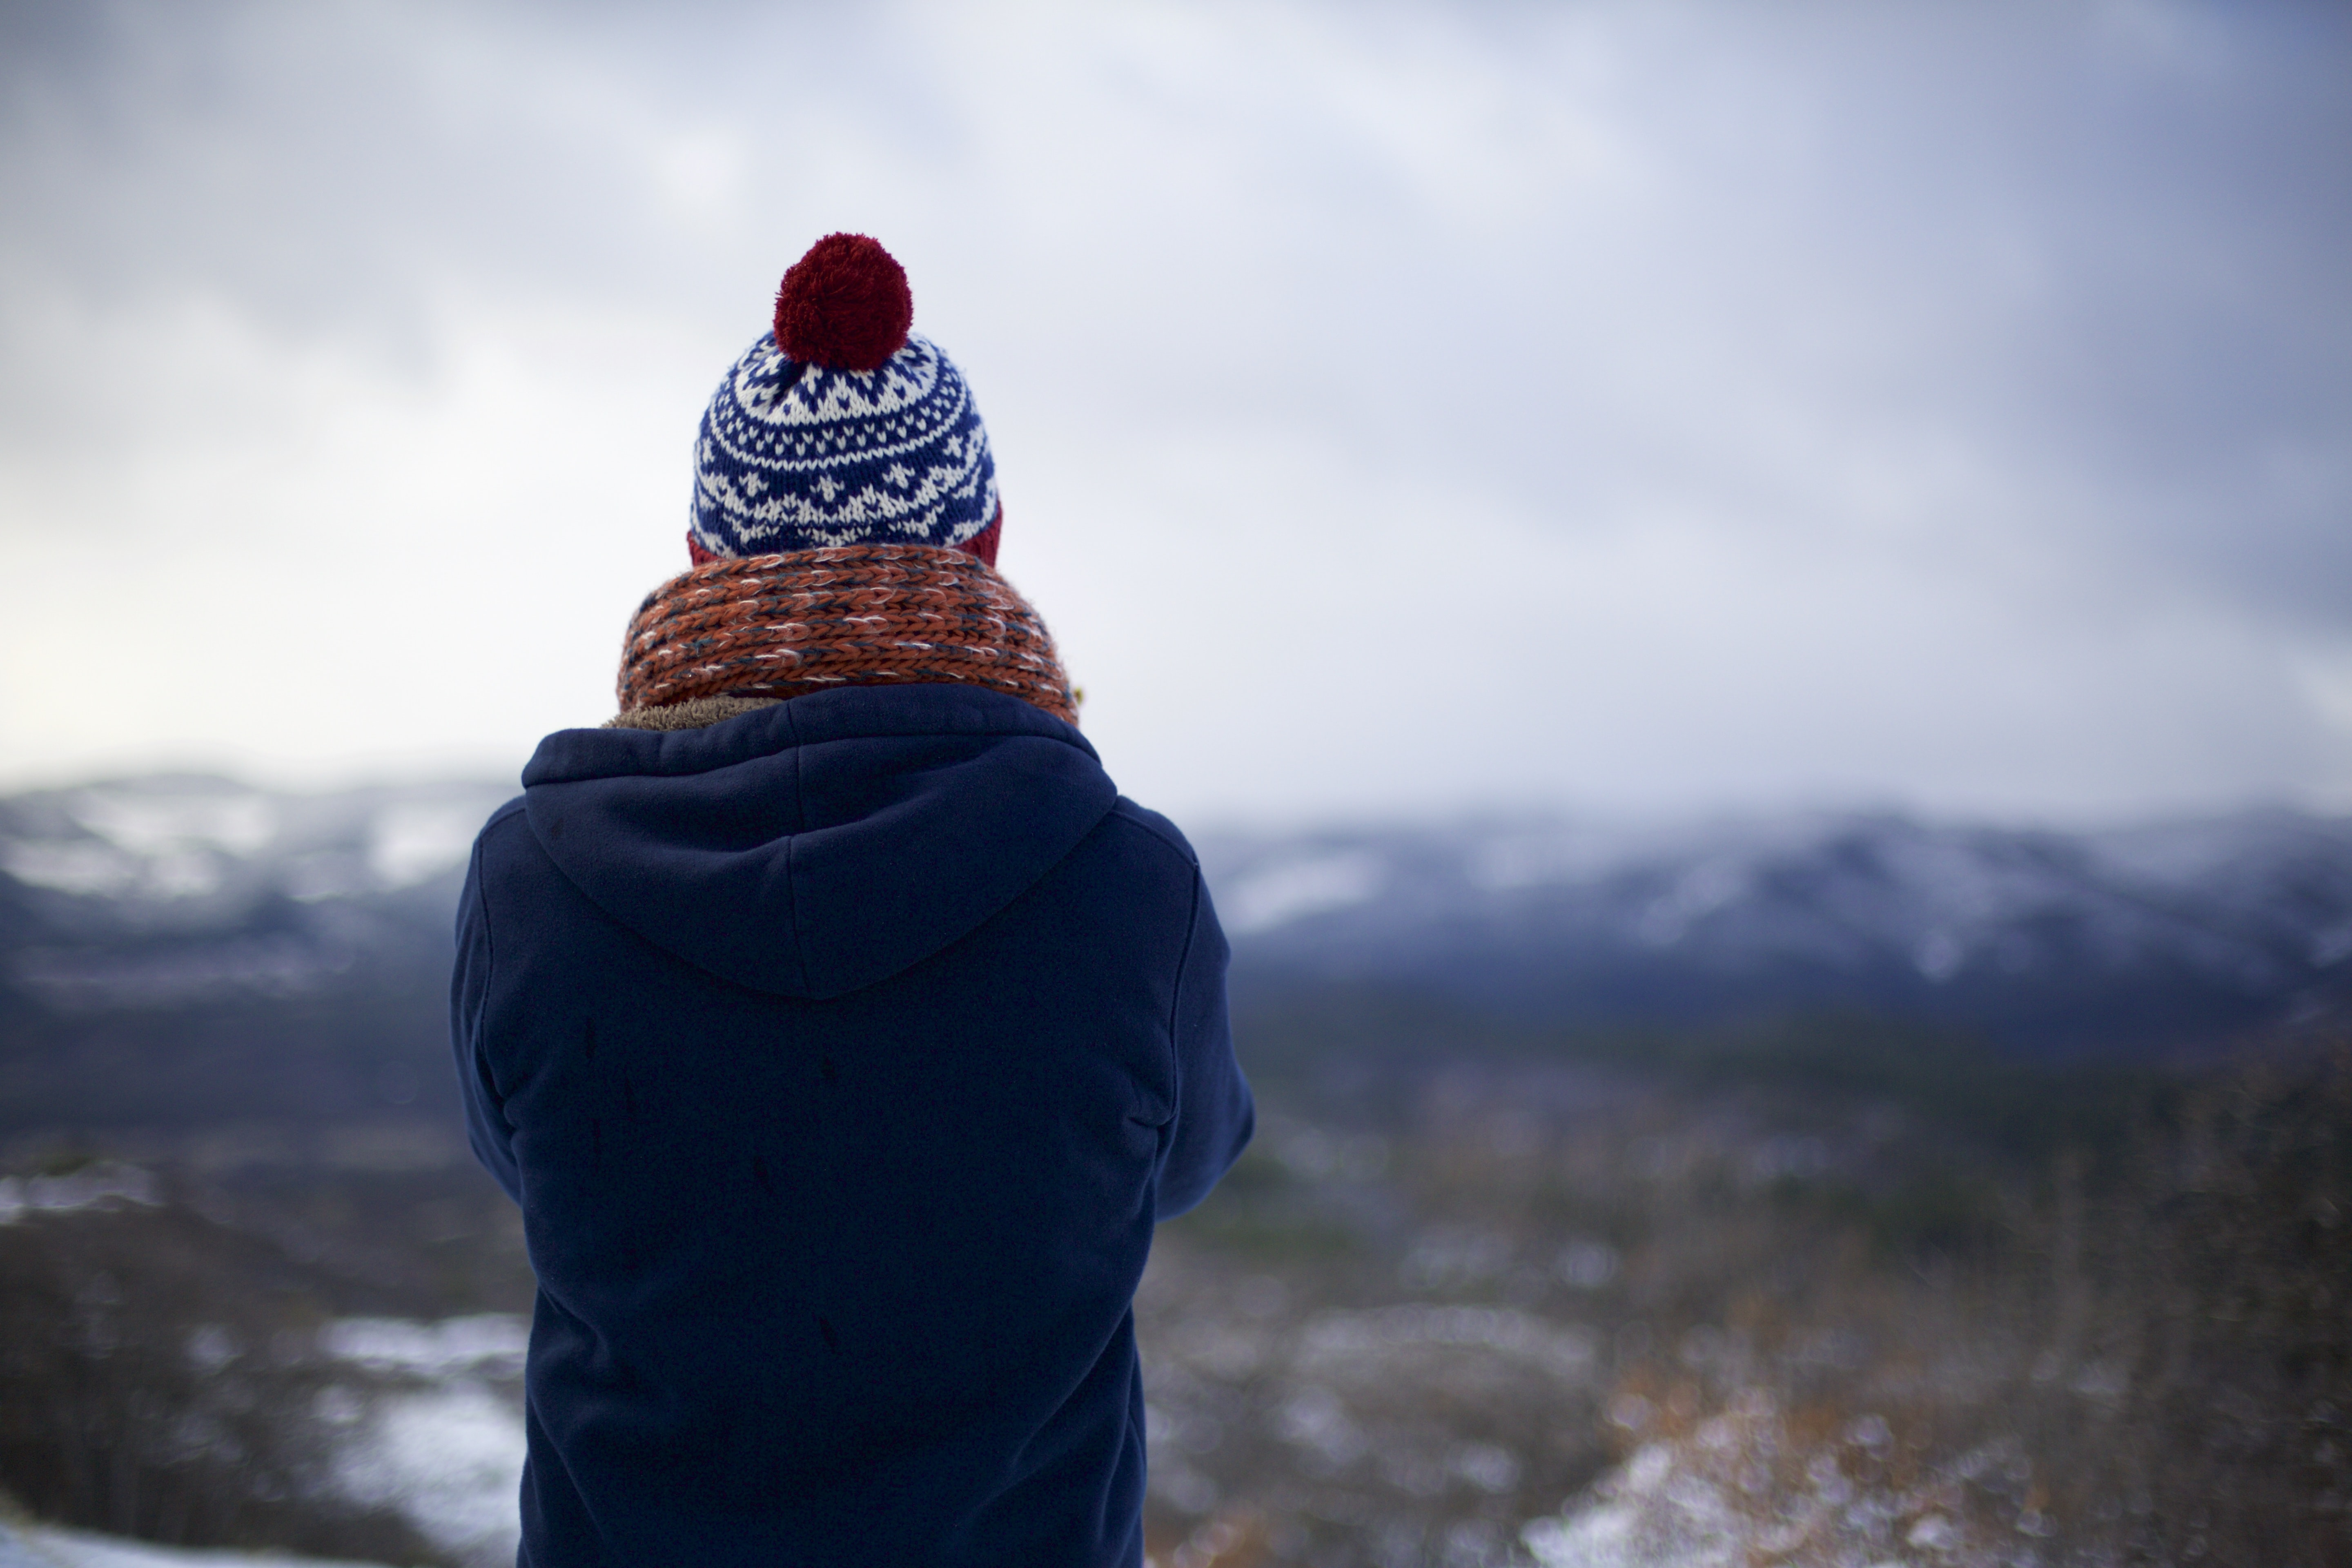 The back of a person  with crossed arms wearing a knit cap, scarf, and blue coat is visible as he or she stares out into snowy wilderness